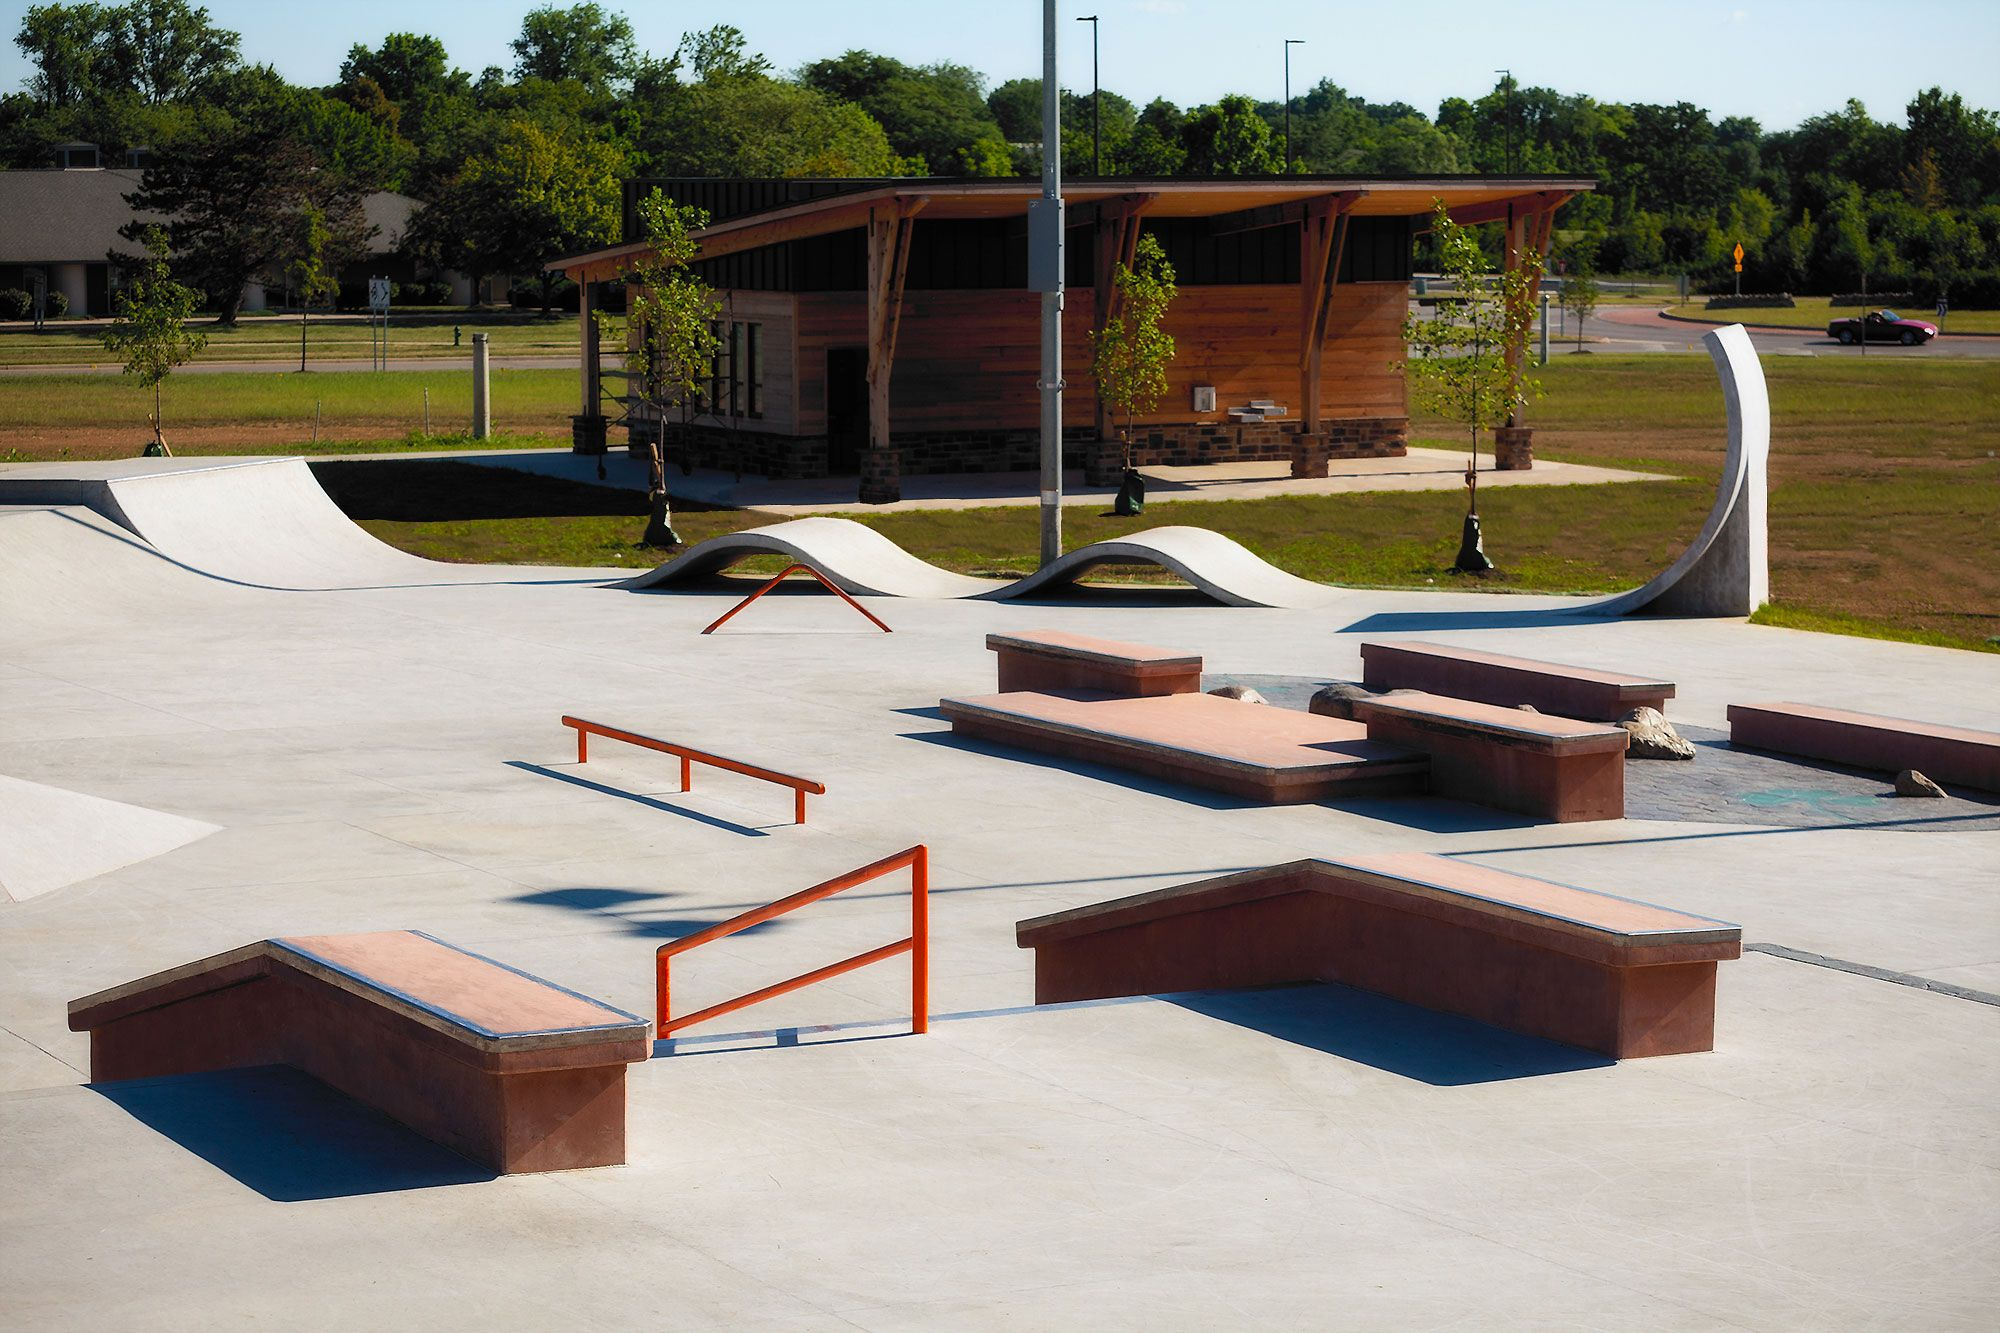 Plan Your Next Skatepark With The Professional Skatepark Designers And